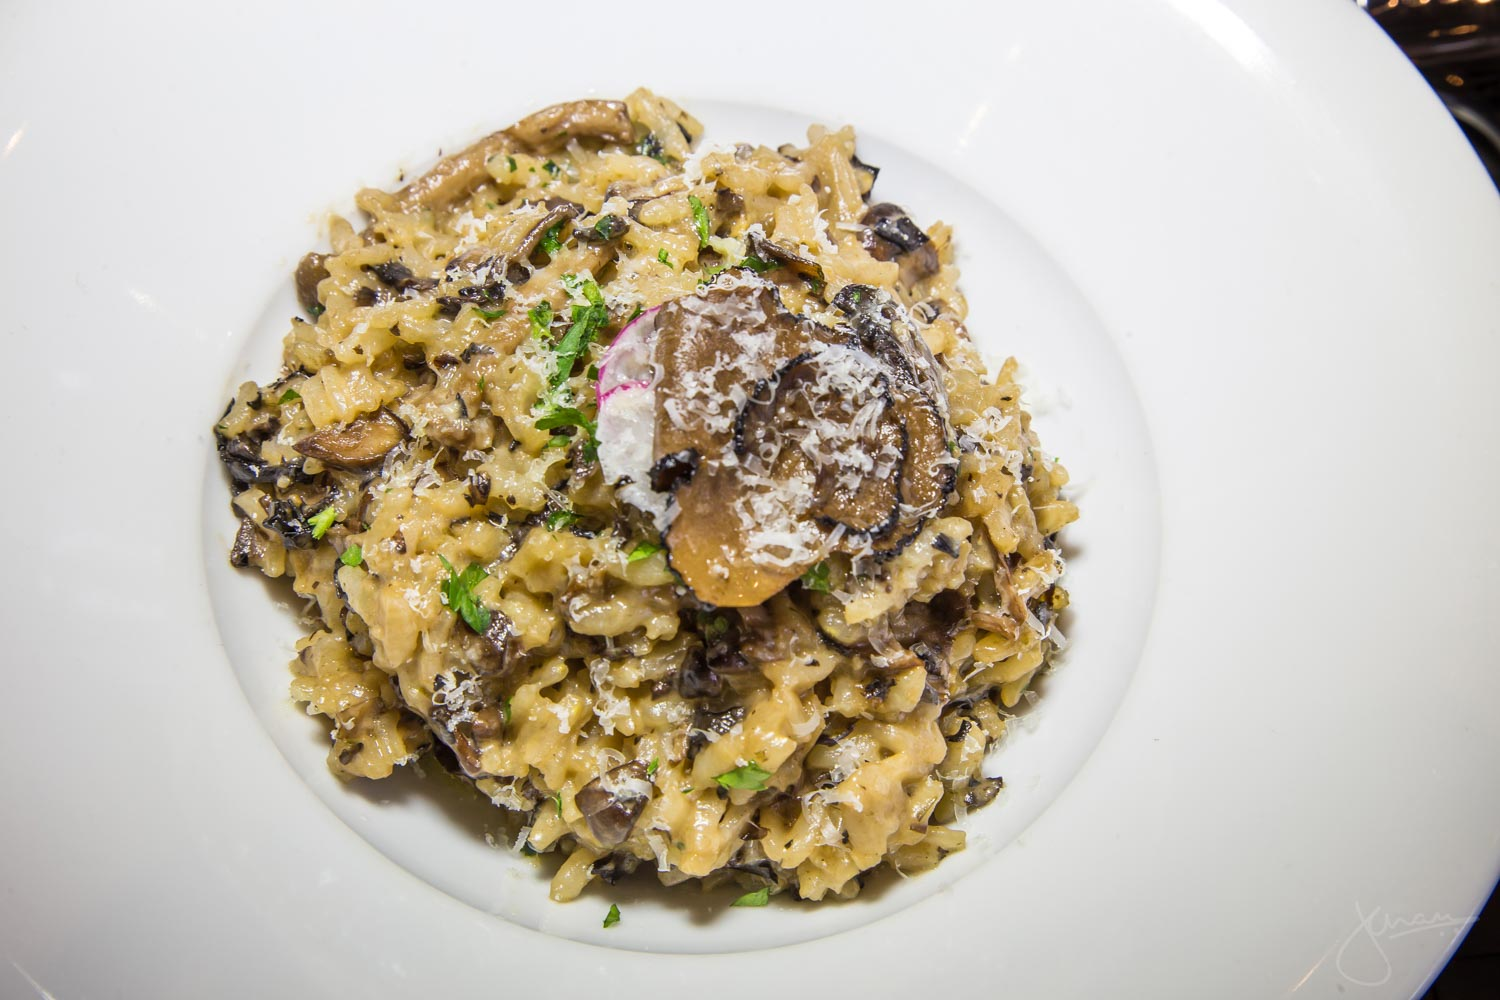 Truffle and Wild Mushroom Risotto - Wild Mushroom Ragout, fresh herbs, shaved black truffle, grated parmesan, white truffle oil